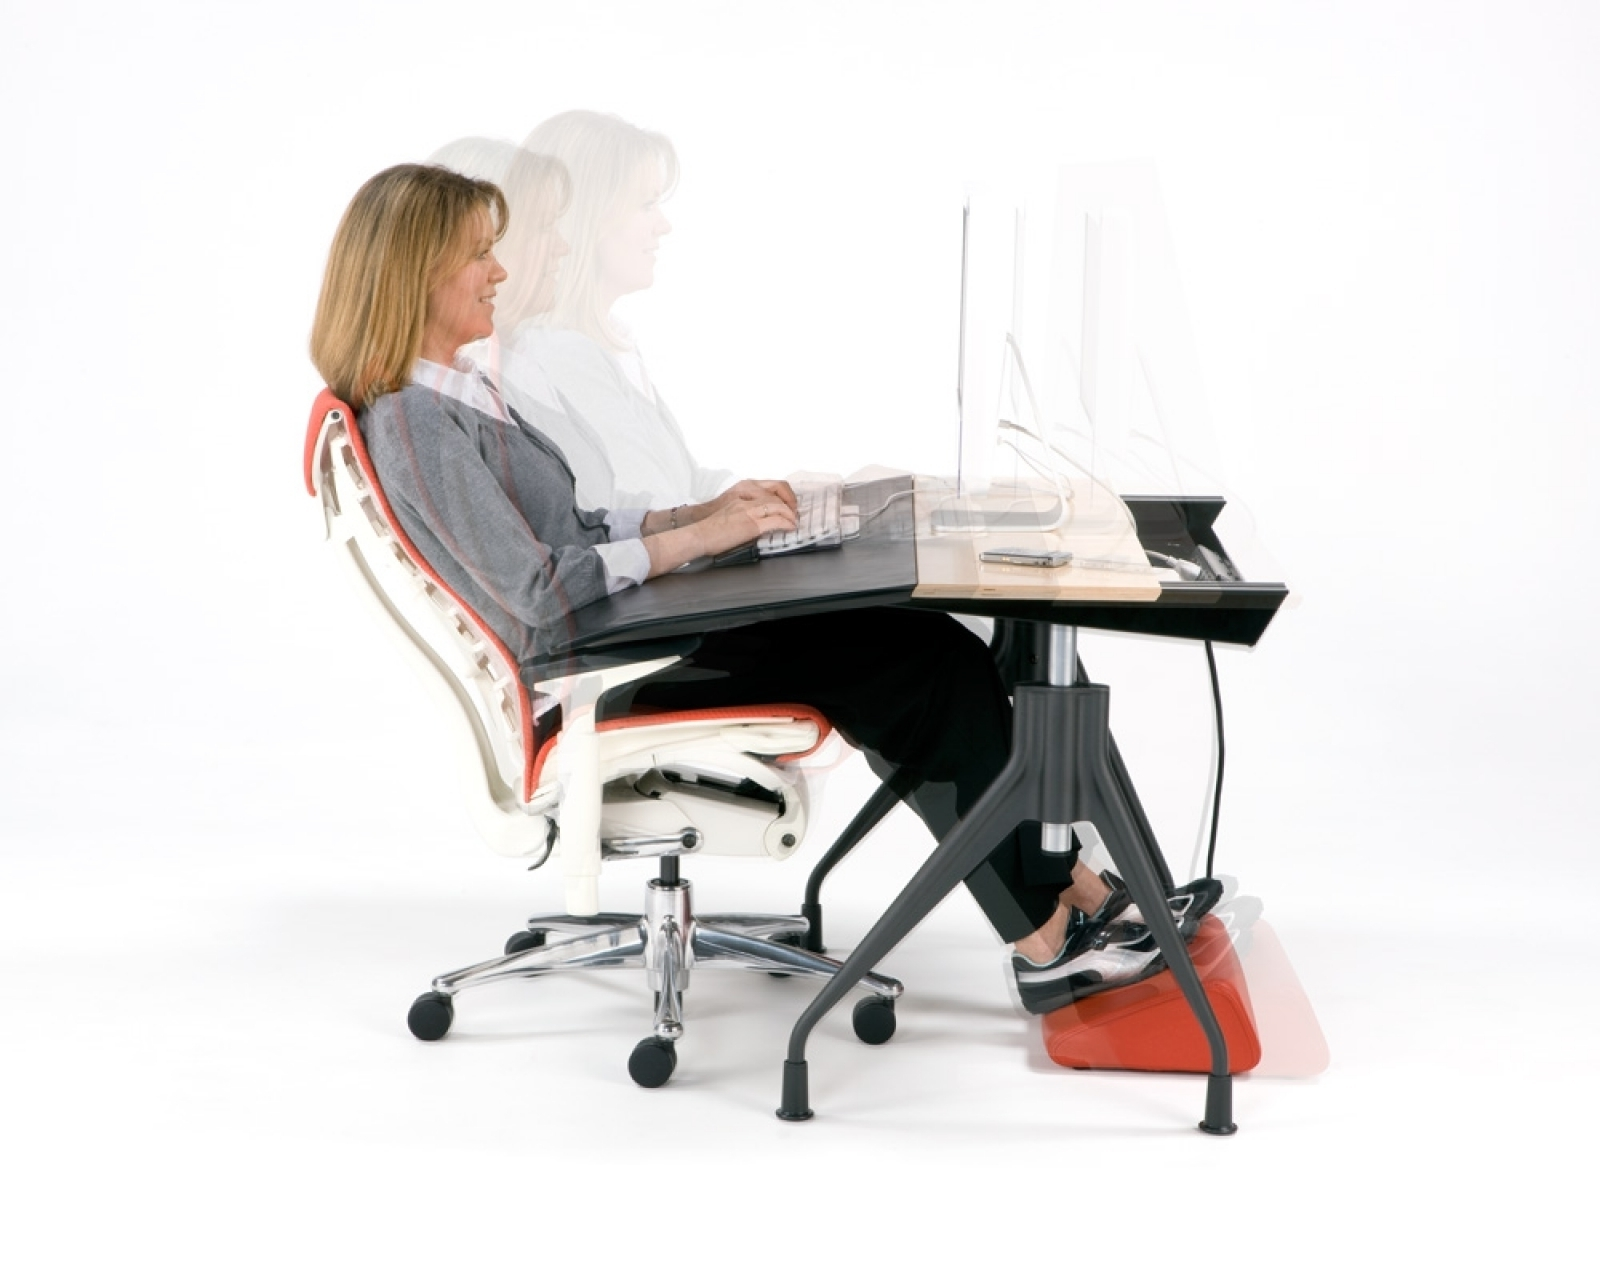 Ergonomic Computer Desks Throughout Most Current Why We Should Apply Chair And Ergonomic Computer Desk Today (View 9 of 20)